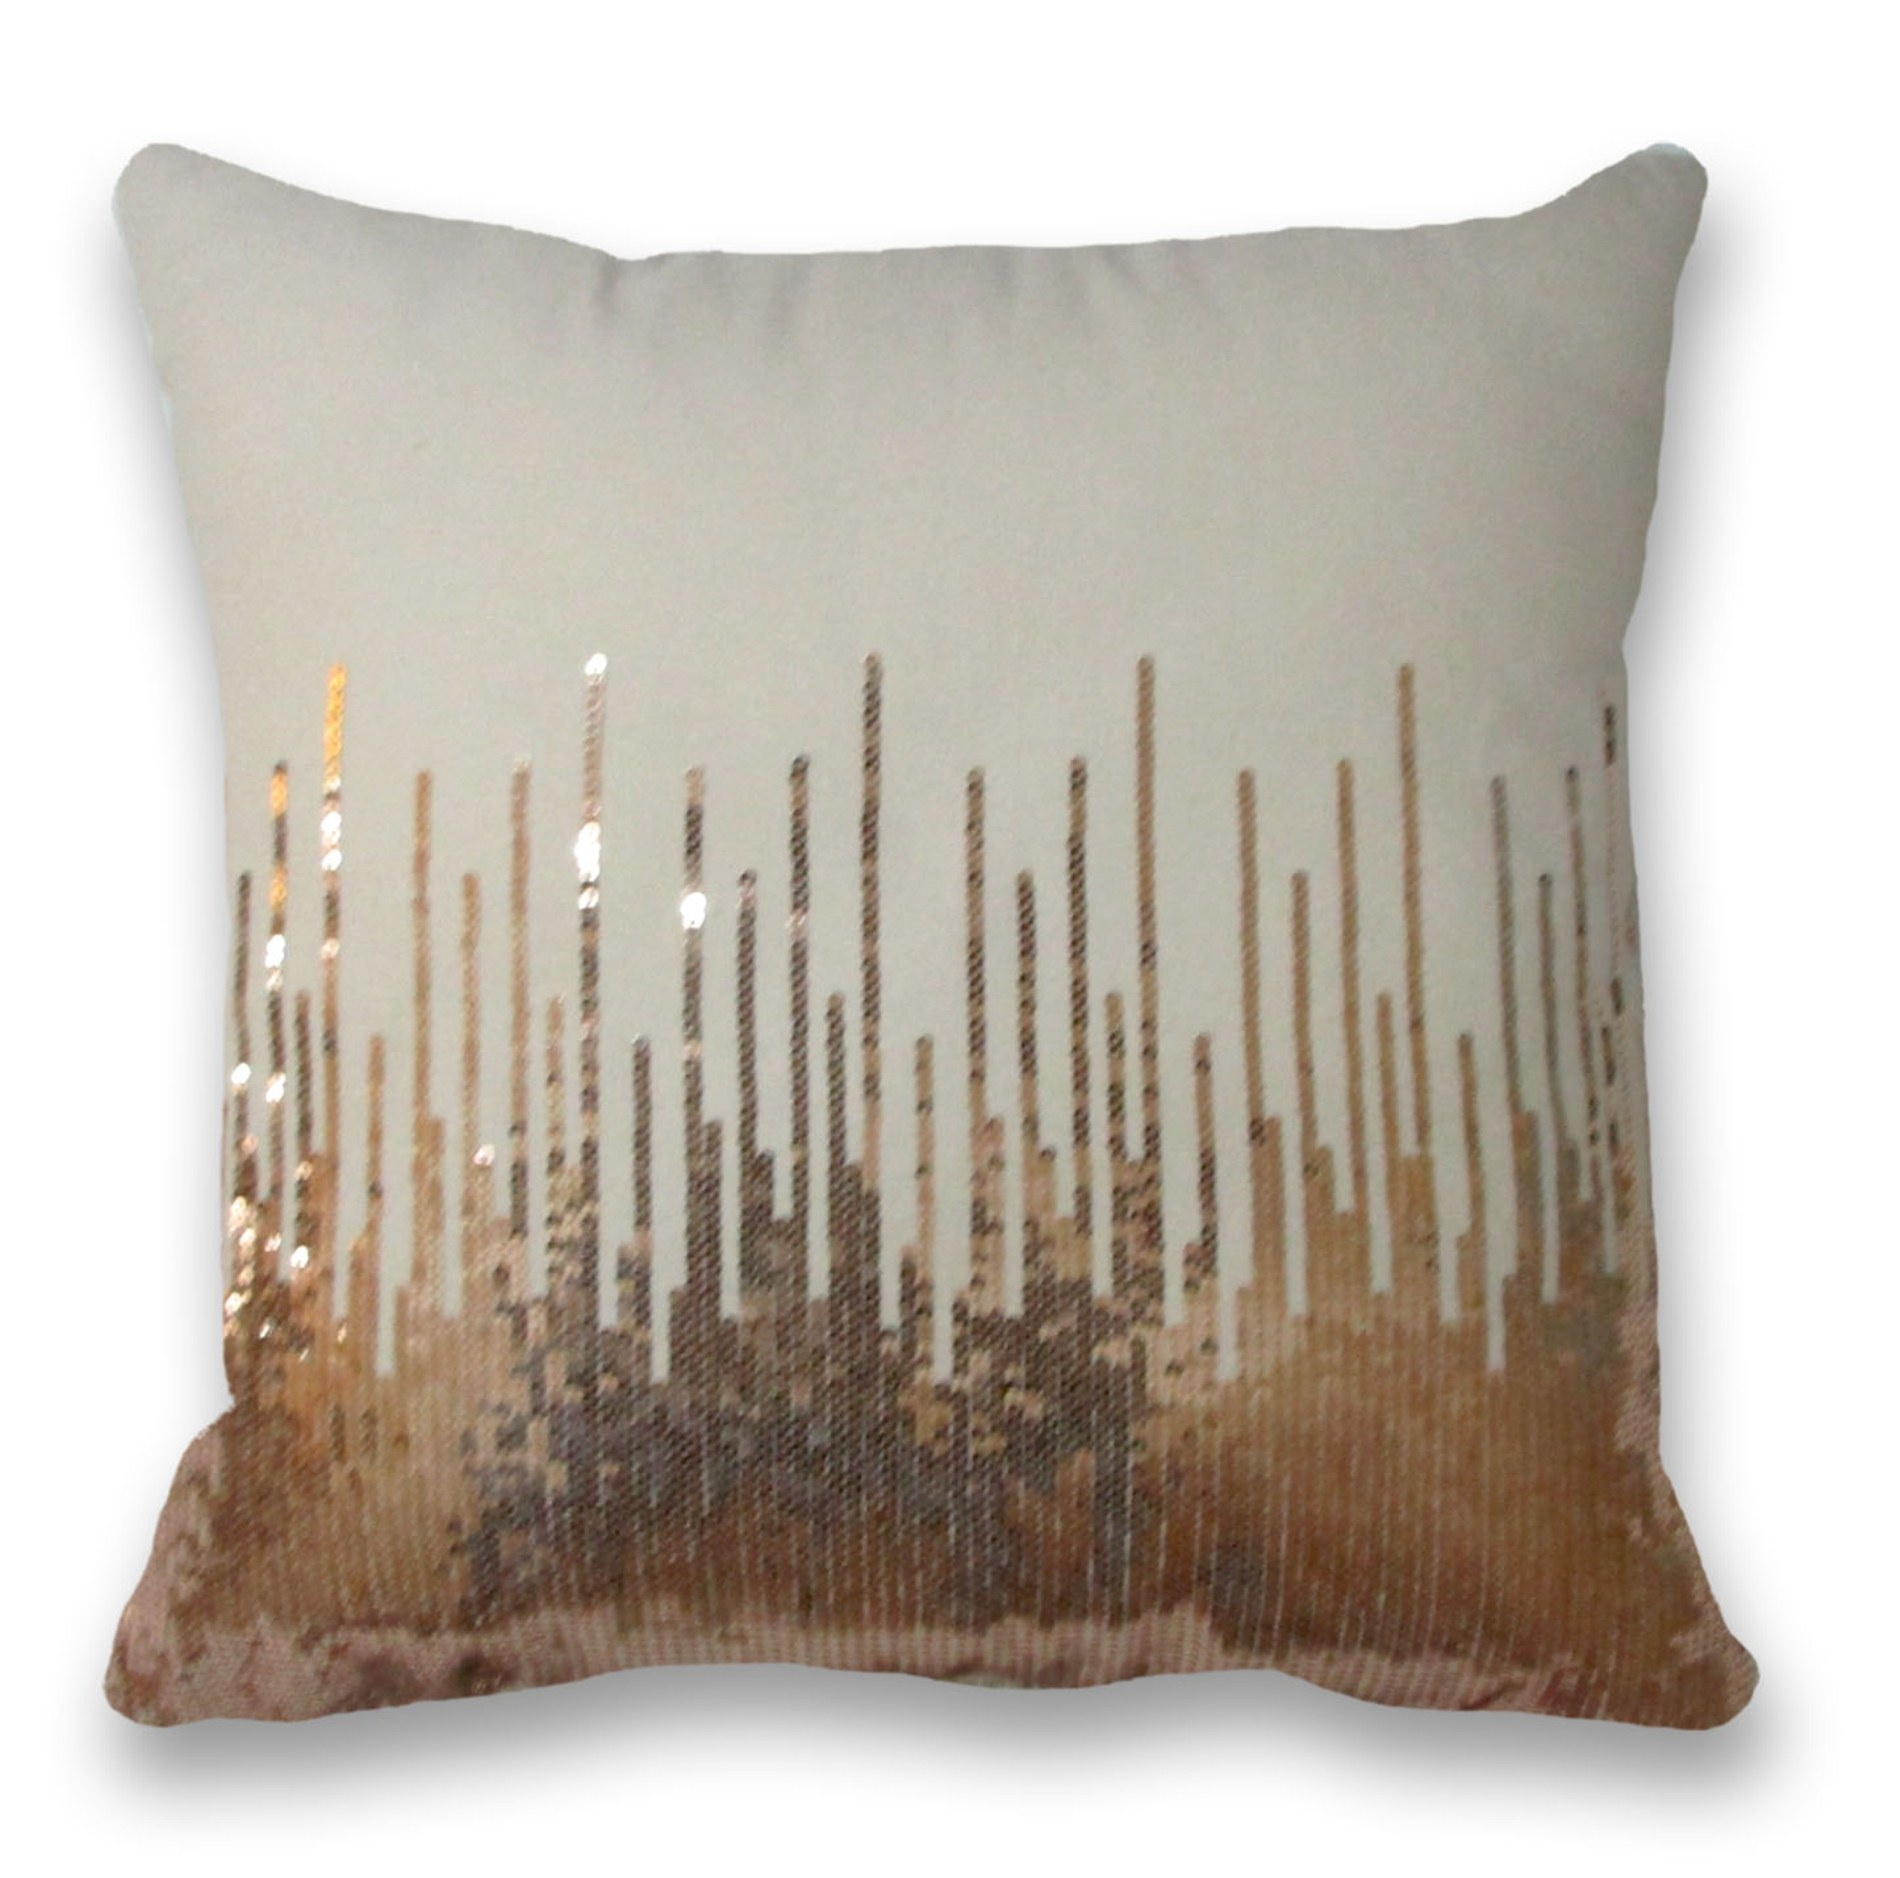 Decorative Pillows Kmart : HOLLYWOOD ROSE Decorative Pillow - Copper Beige Shop Your Way: Online Shopping & Earn Points ...